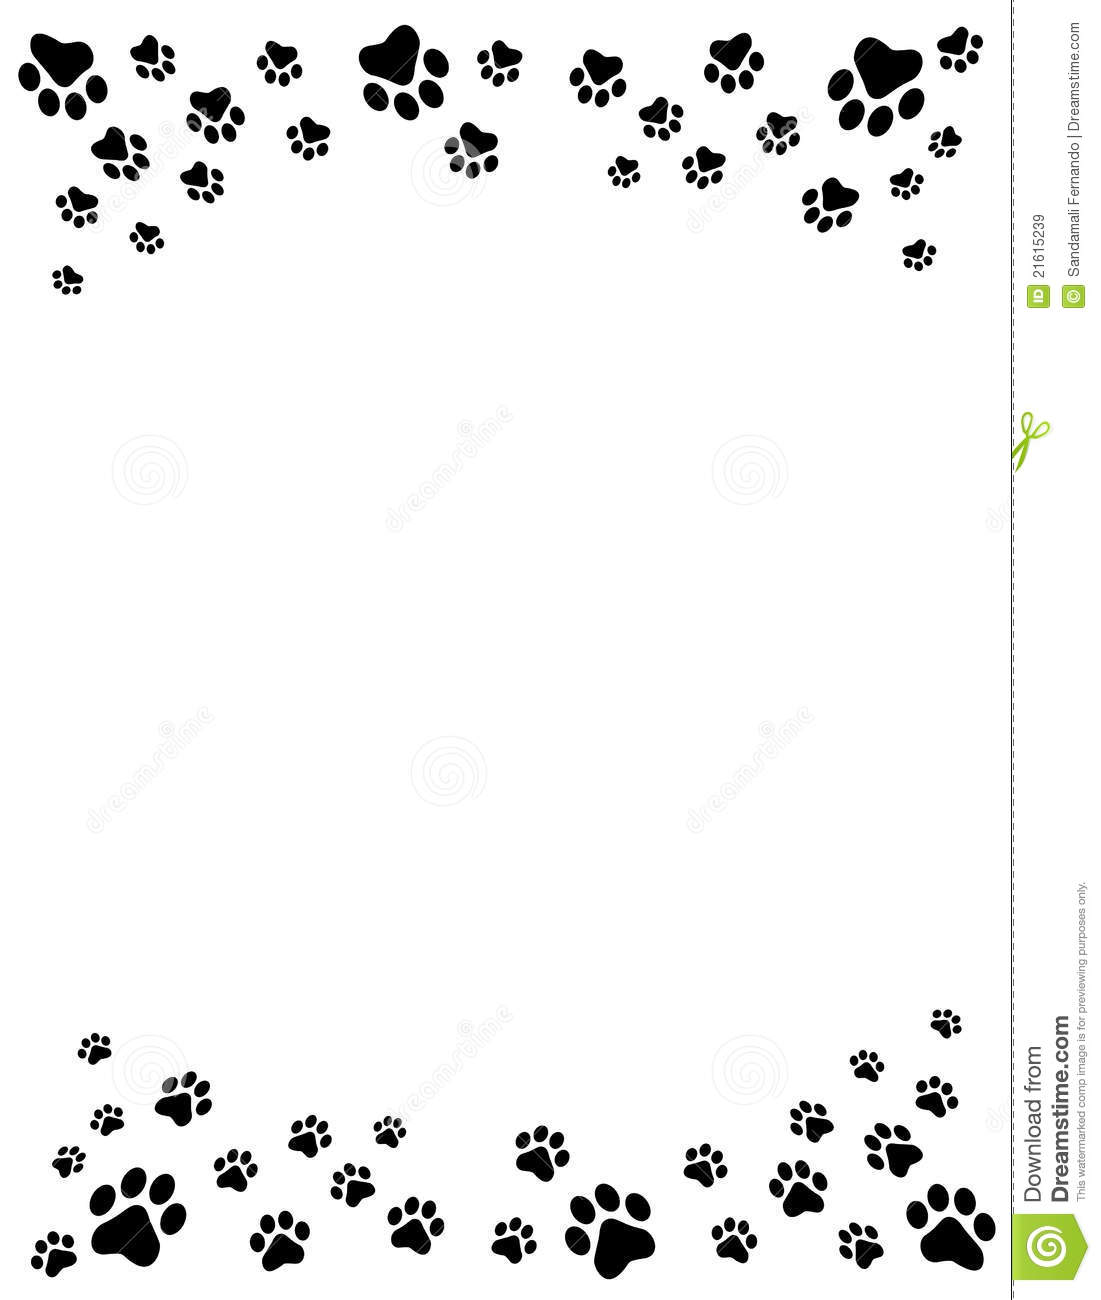 Emotions clipart border Design Paw Print Clipart Emotions